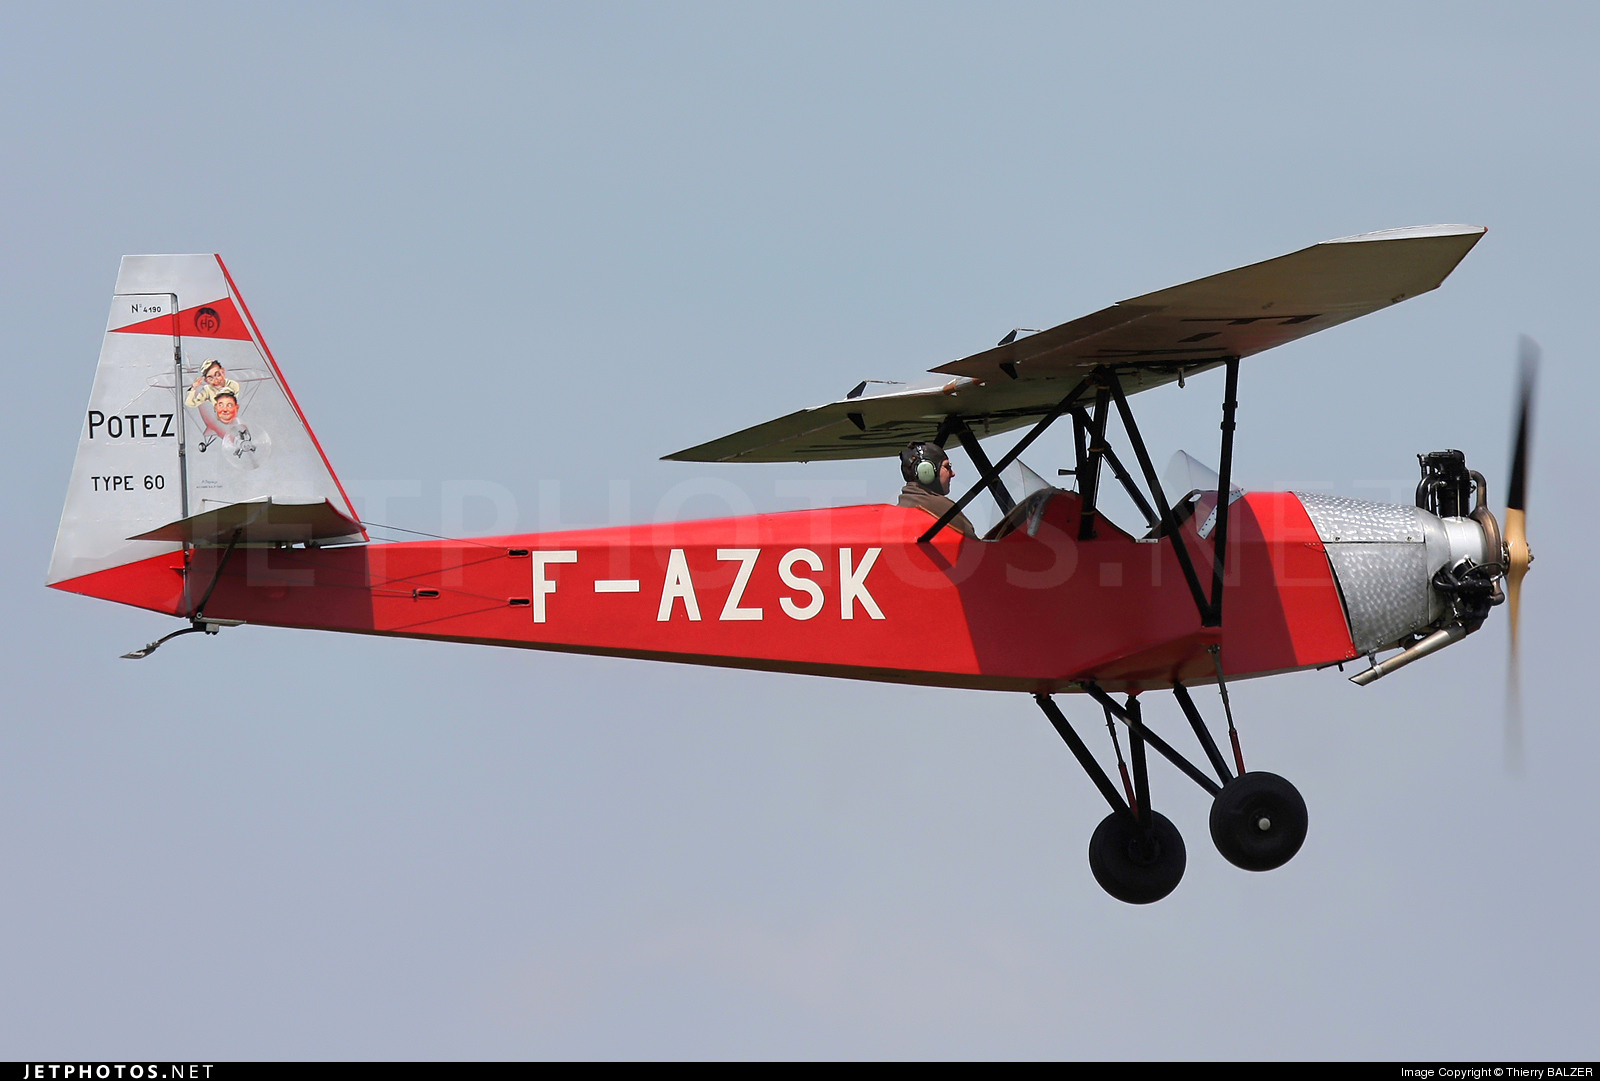 Photo of F-AZSK Potez 60 Sauterelle by Thierry BALZER